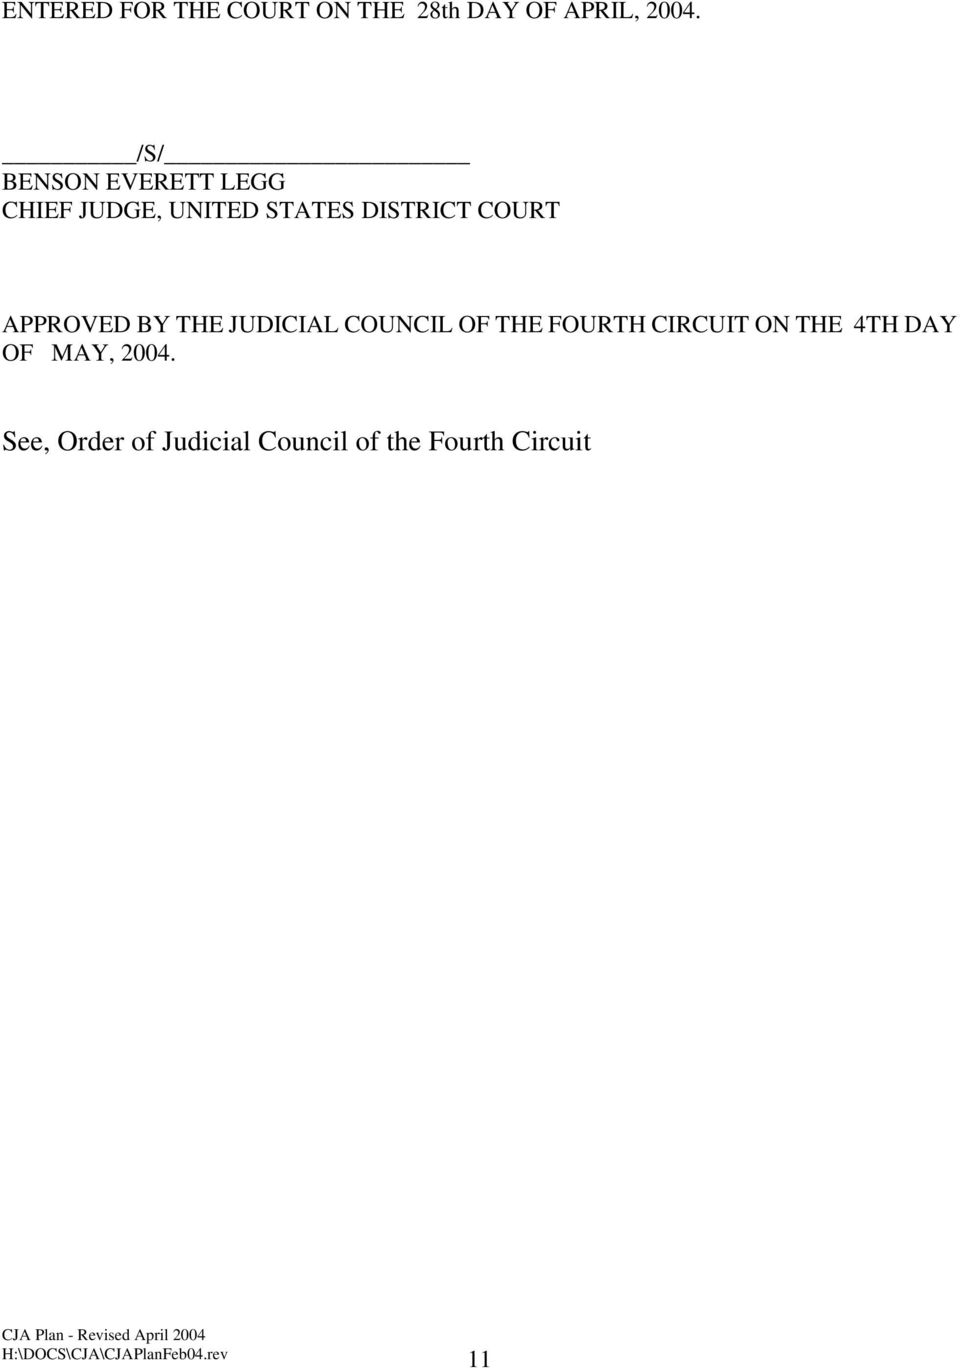 COURT APPROVED BY THE JUDICIAL COUNCIL OF THE FOURTH CIRCUIT ON